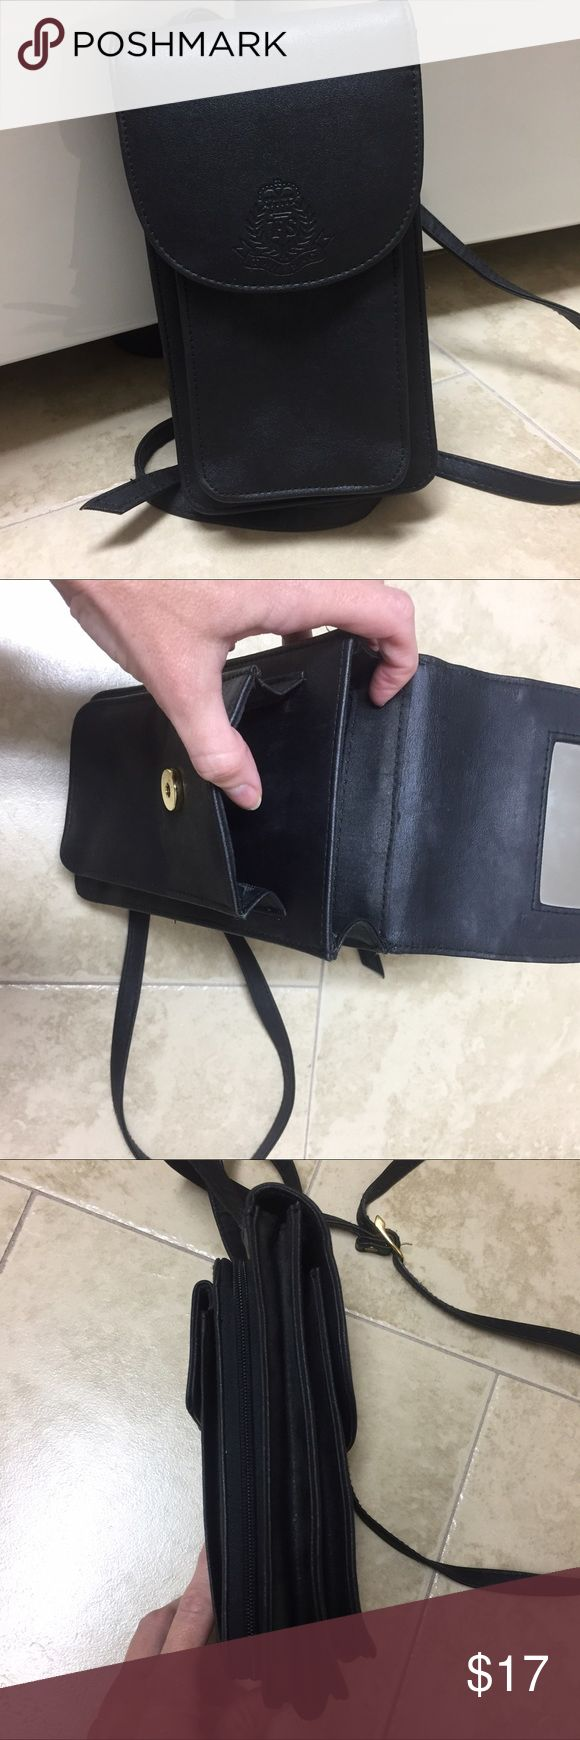 Tandem Bags Crossbody Travel Bag Purse Handbag Excellent condition. Individual pockets for money, passport, phone and sunglasses. Great way to stay organized when you travel. Black faux leather. Adjustable strap.  Measures approx 9 x 5. Tandem Bags Crossbody Bags